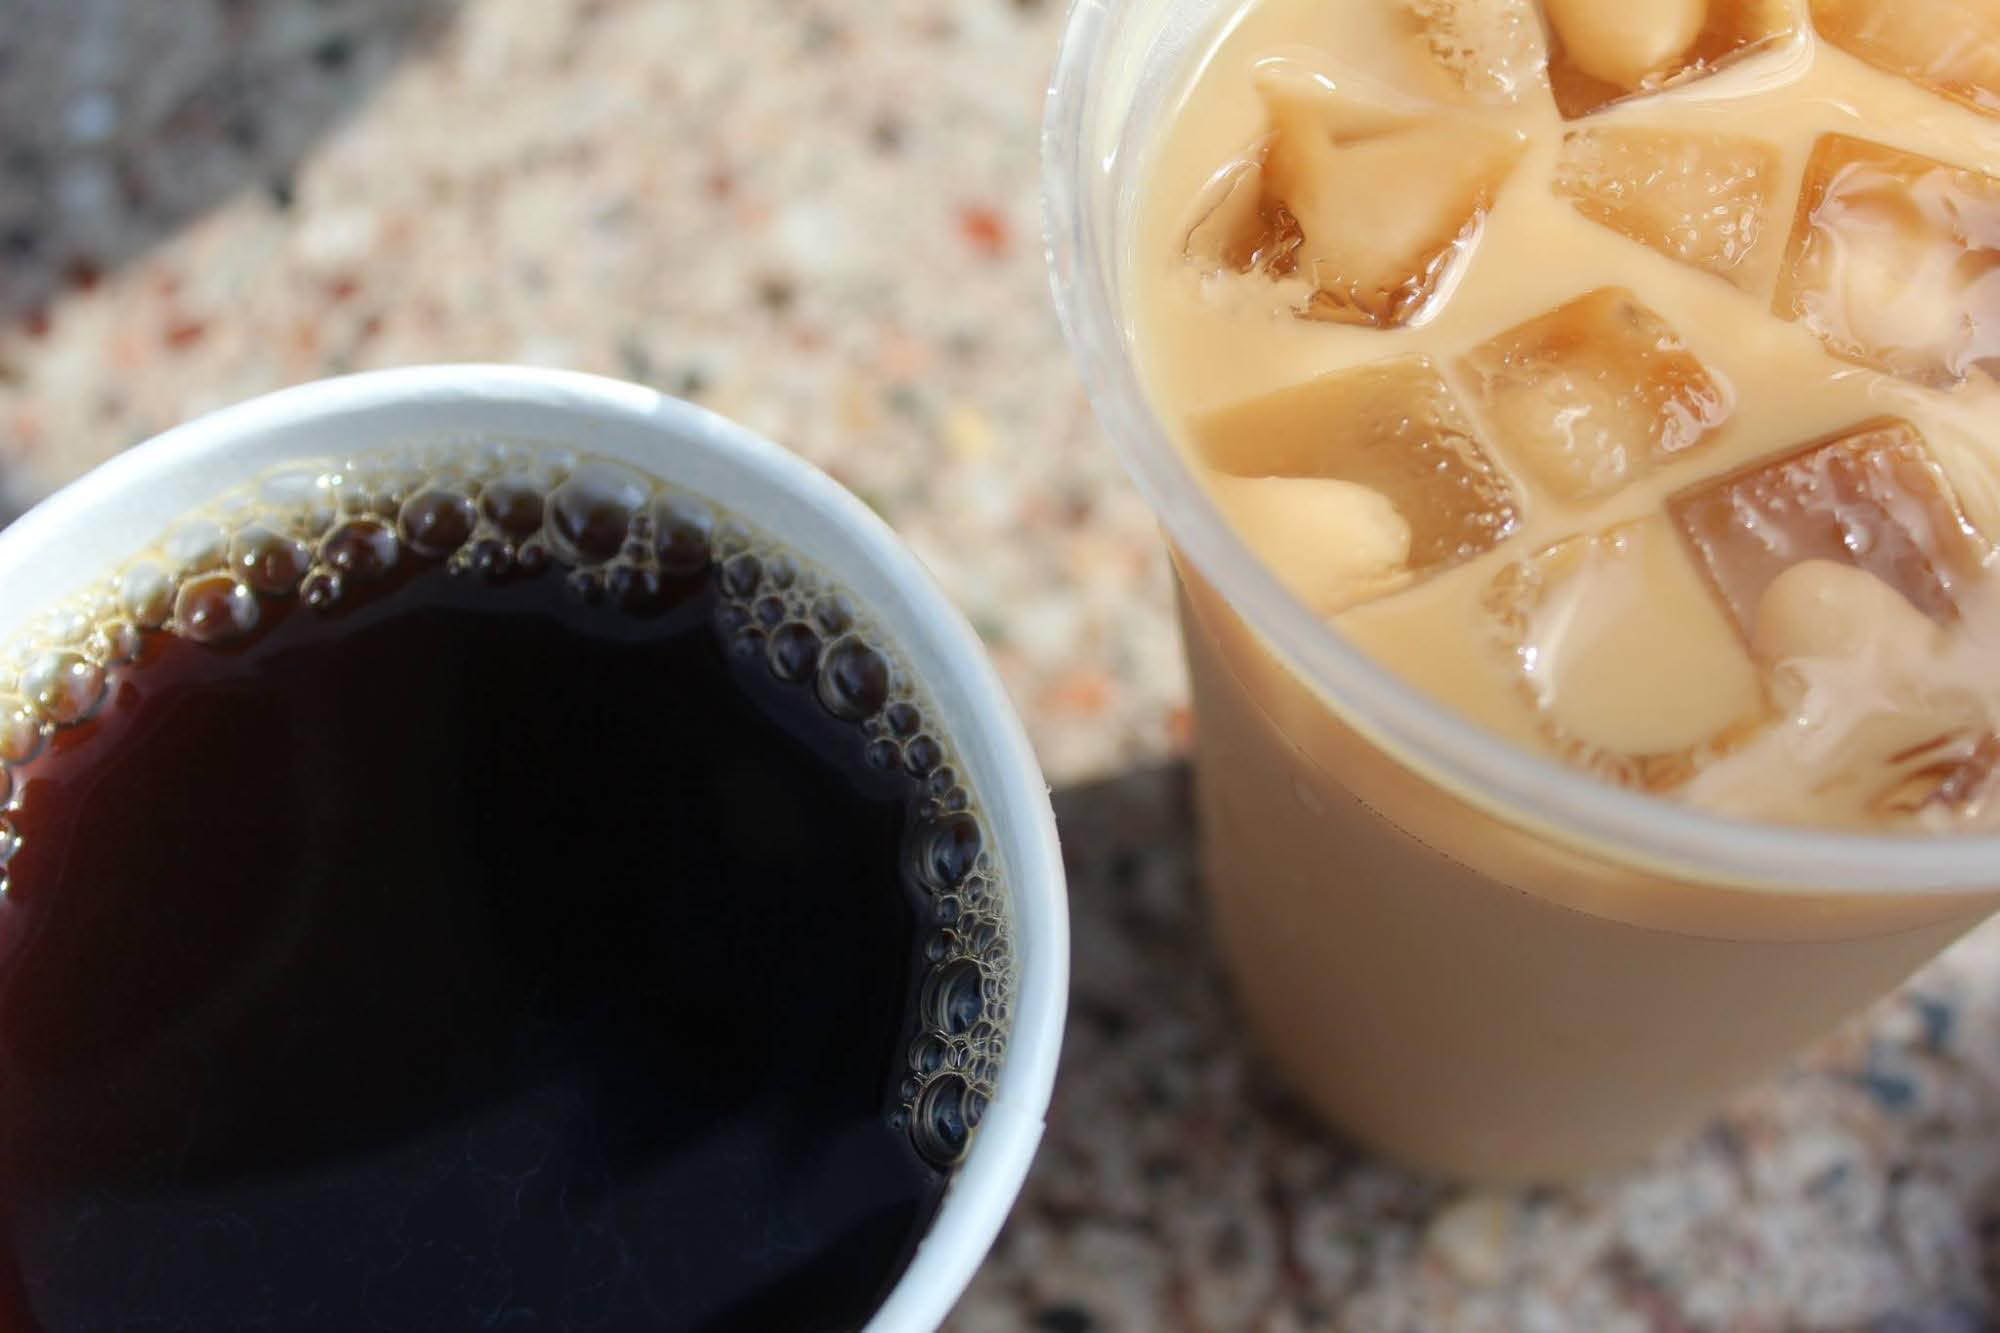 Hot and cold coffee drinks available at The Creamery!